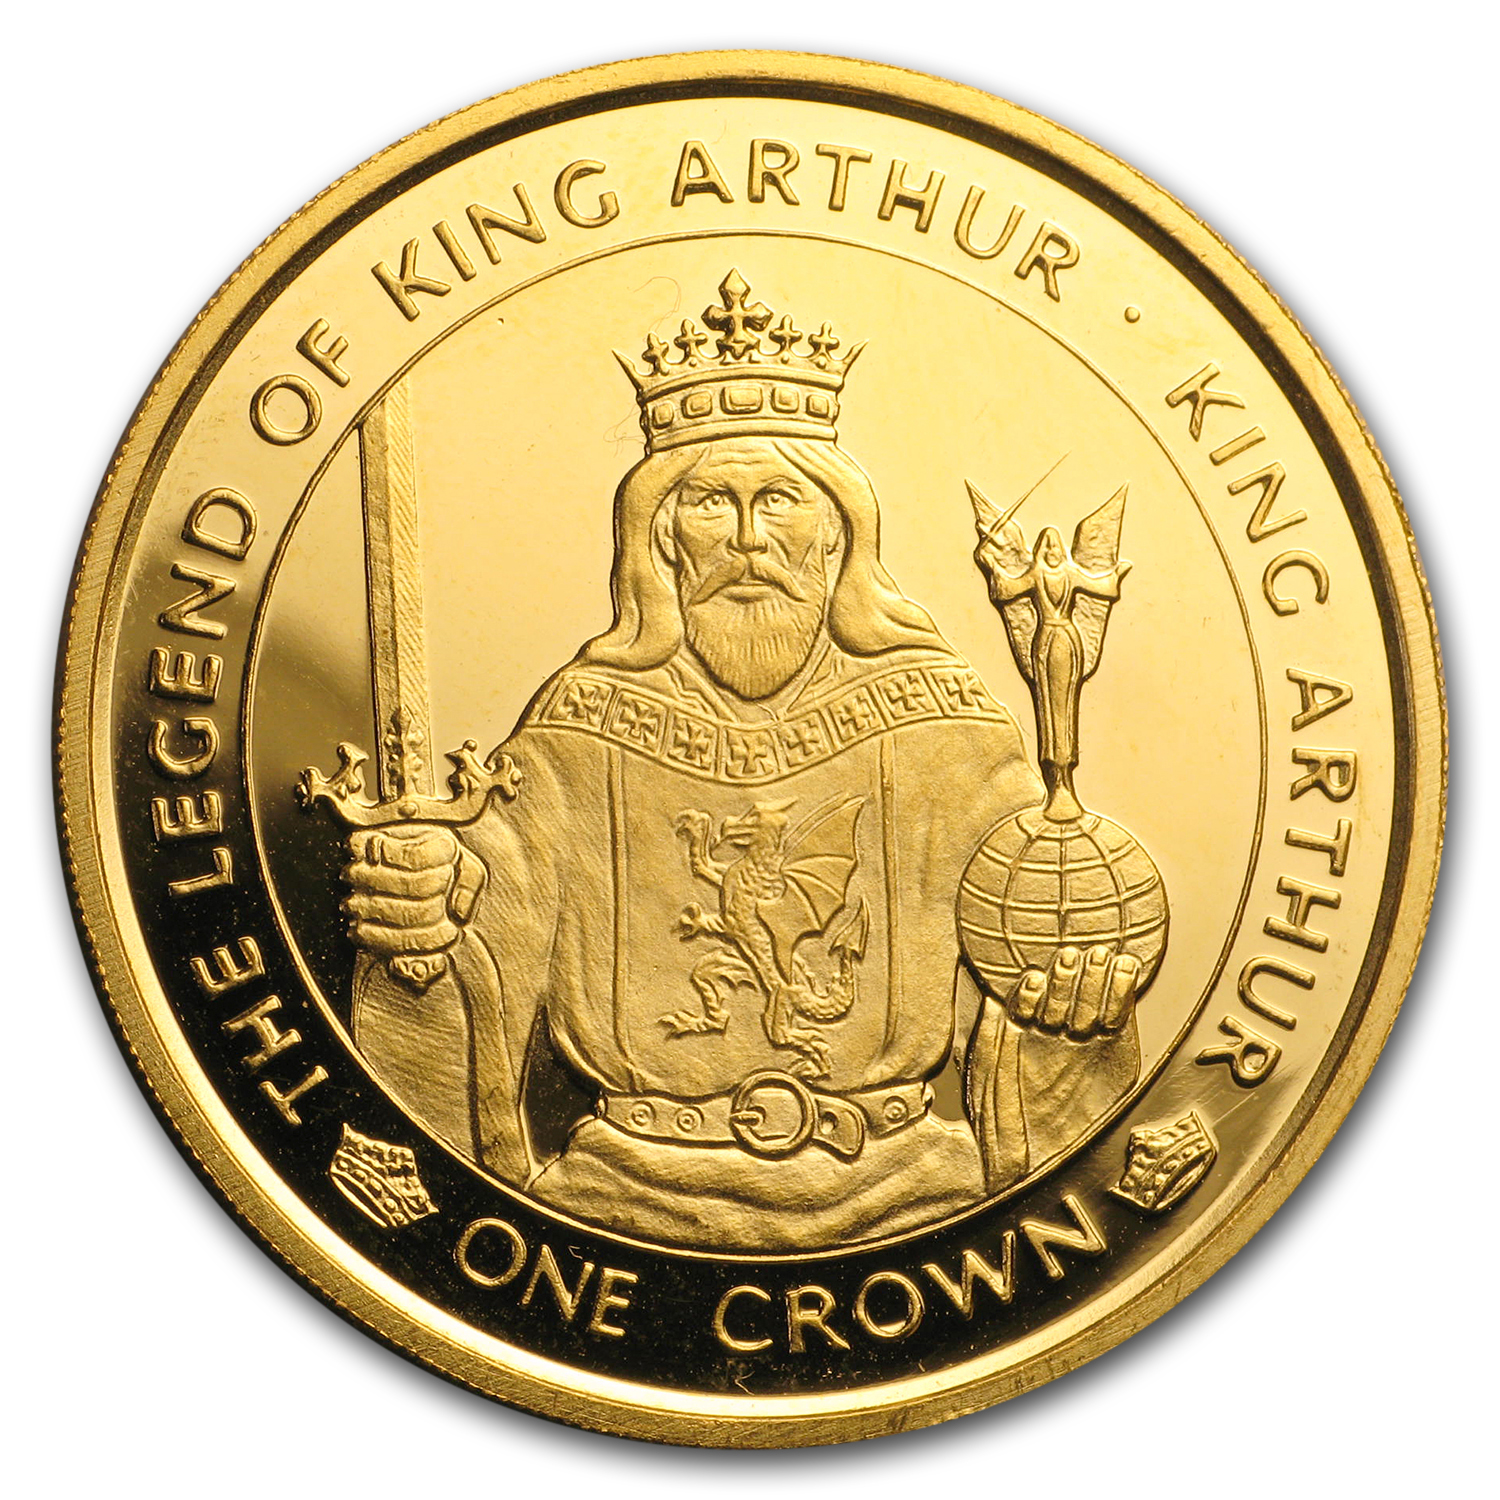 1996 Isle of Man 1 oz Gold King Arthur Proof